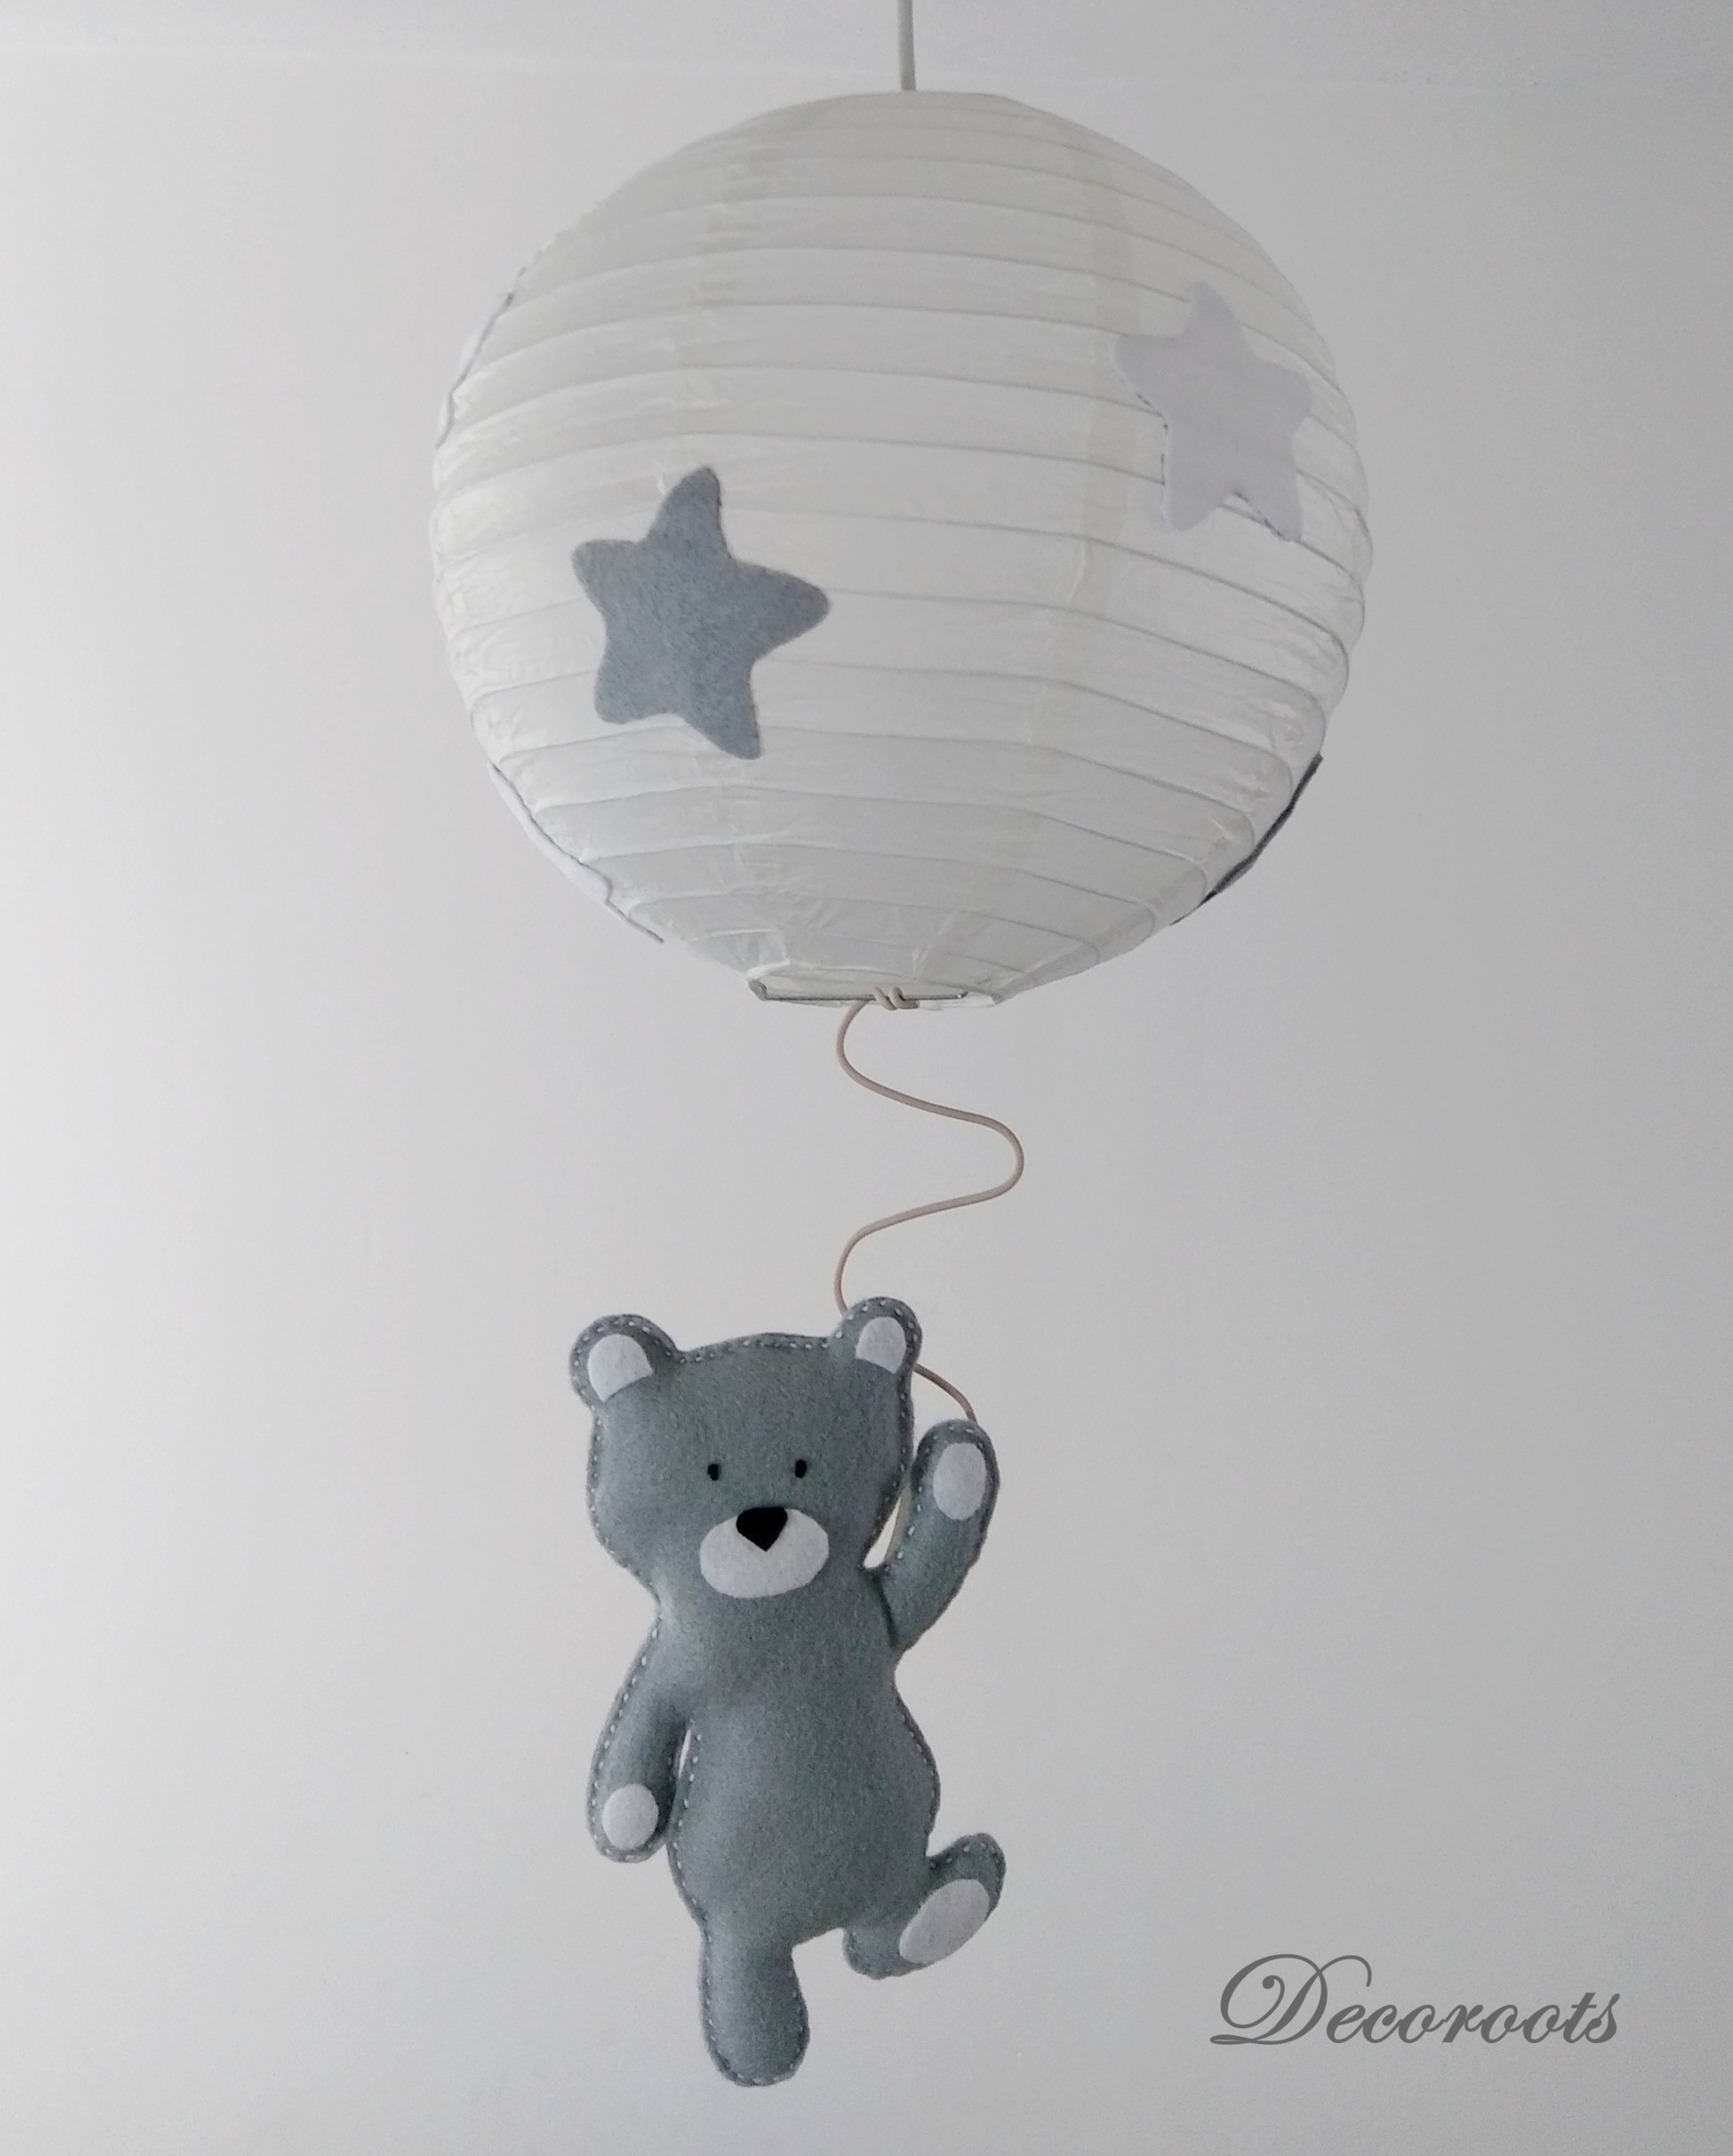 Suspension Bébé Garçon : Lustre suspension ours tom gris blanc enfant bébé